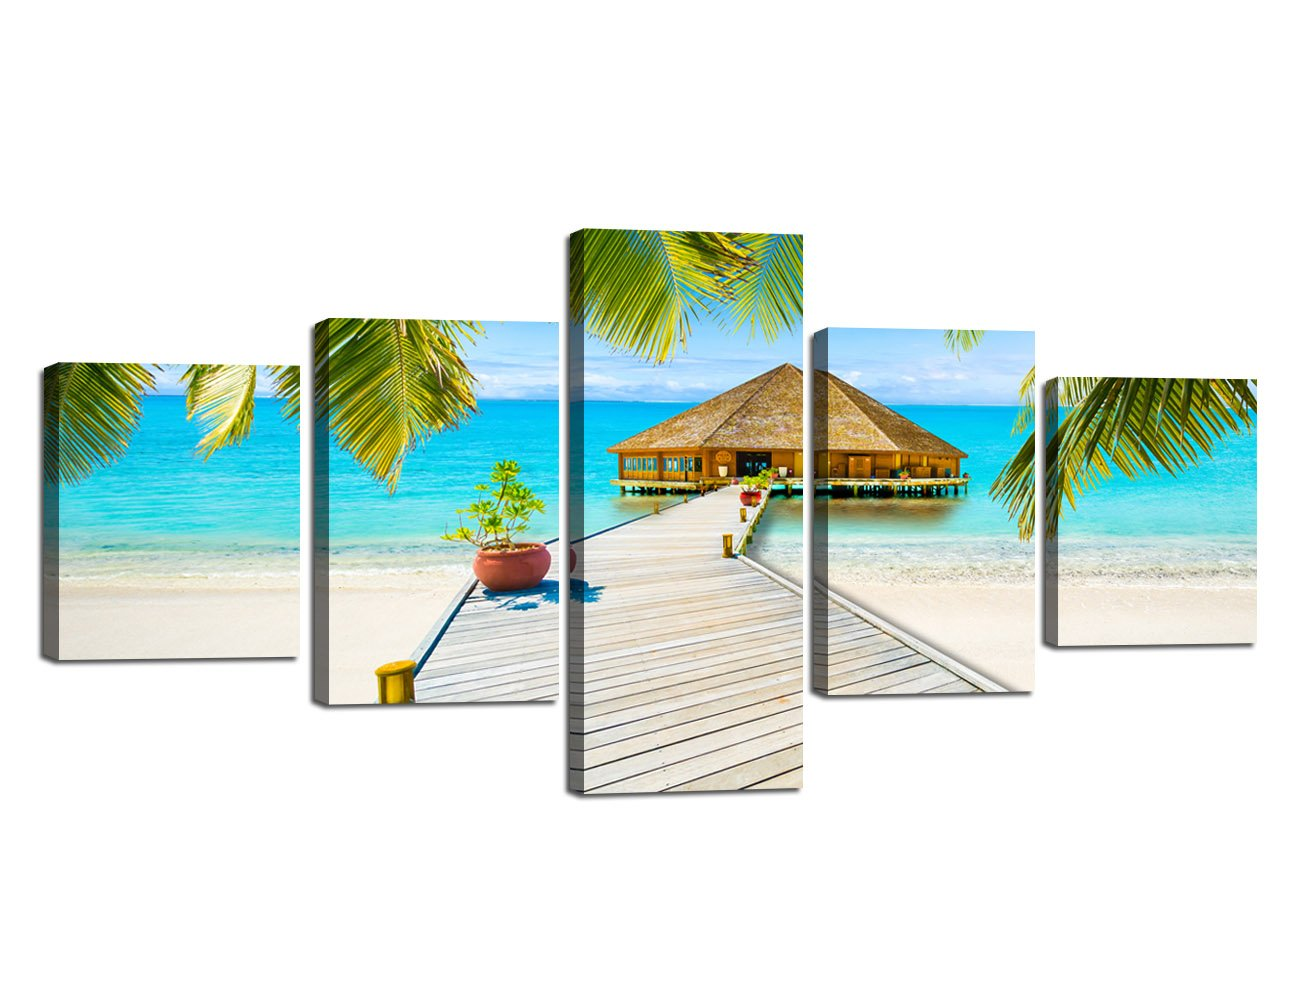 Ocean_37 Small Size Scene of Sea Waves Palm Tree Landscape Picture Modern Painting on Canvas 5 Piece Framed Wall Art for Living Room Bedroom Kitchen Home Decor Stretched Gallery Canvas Wrap Giclee Print (60''W x 32''H)